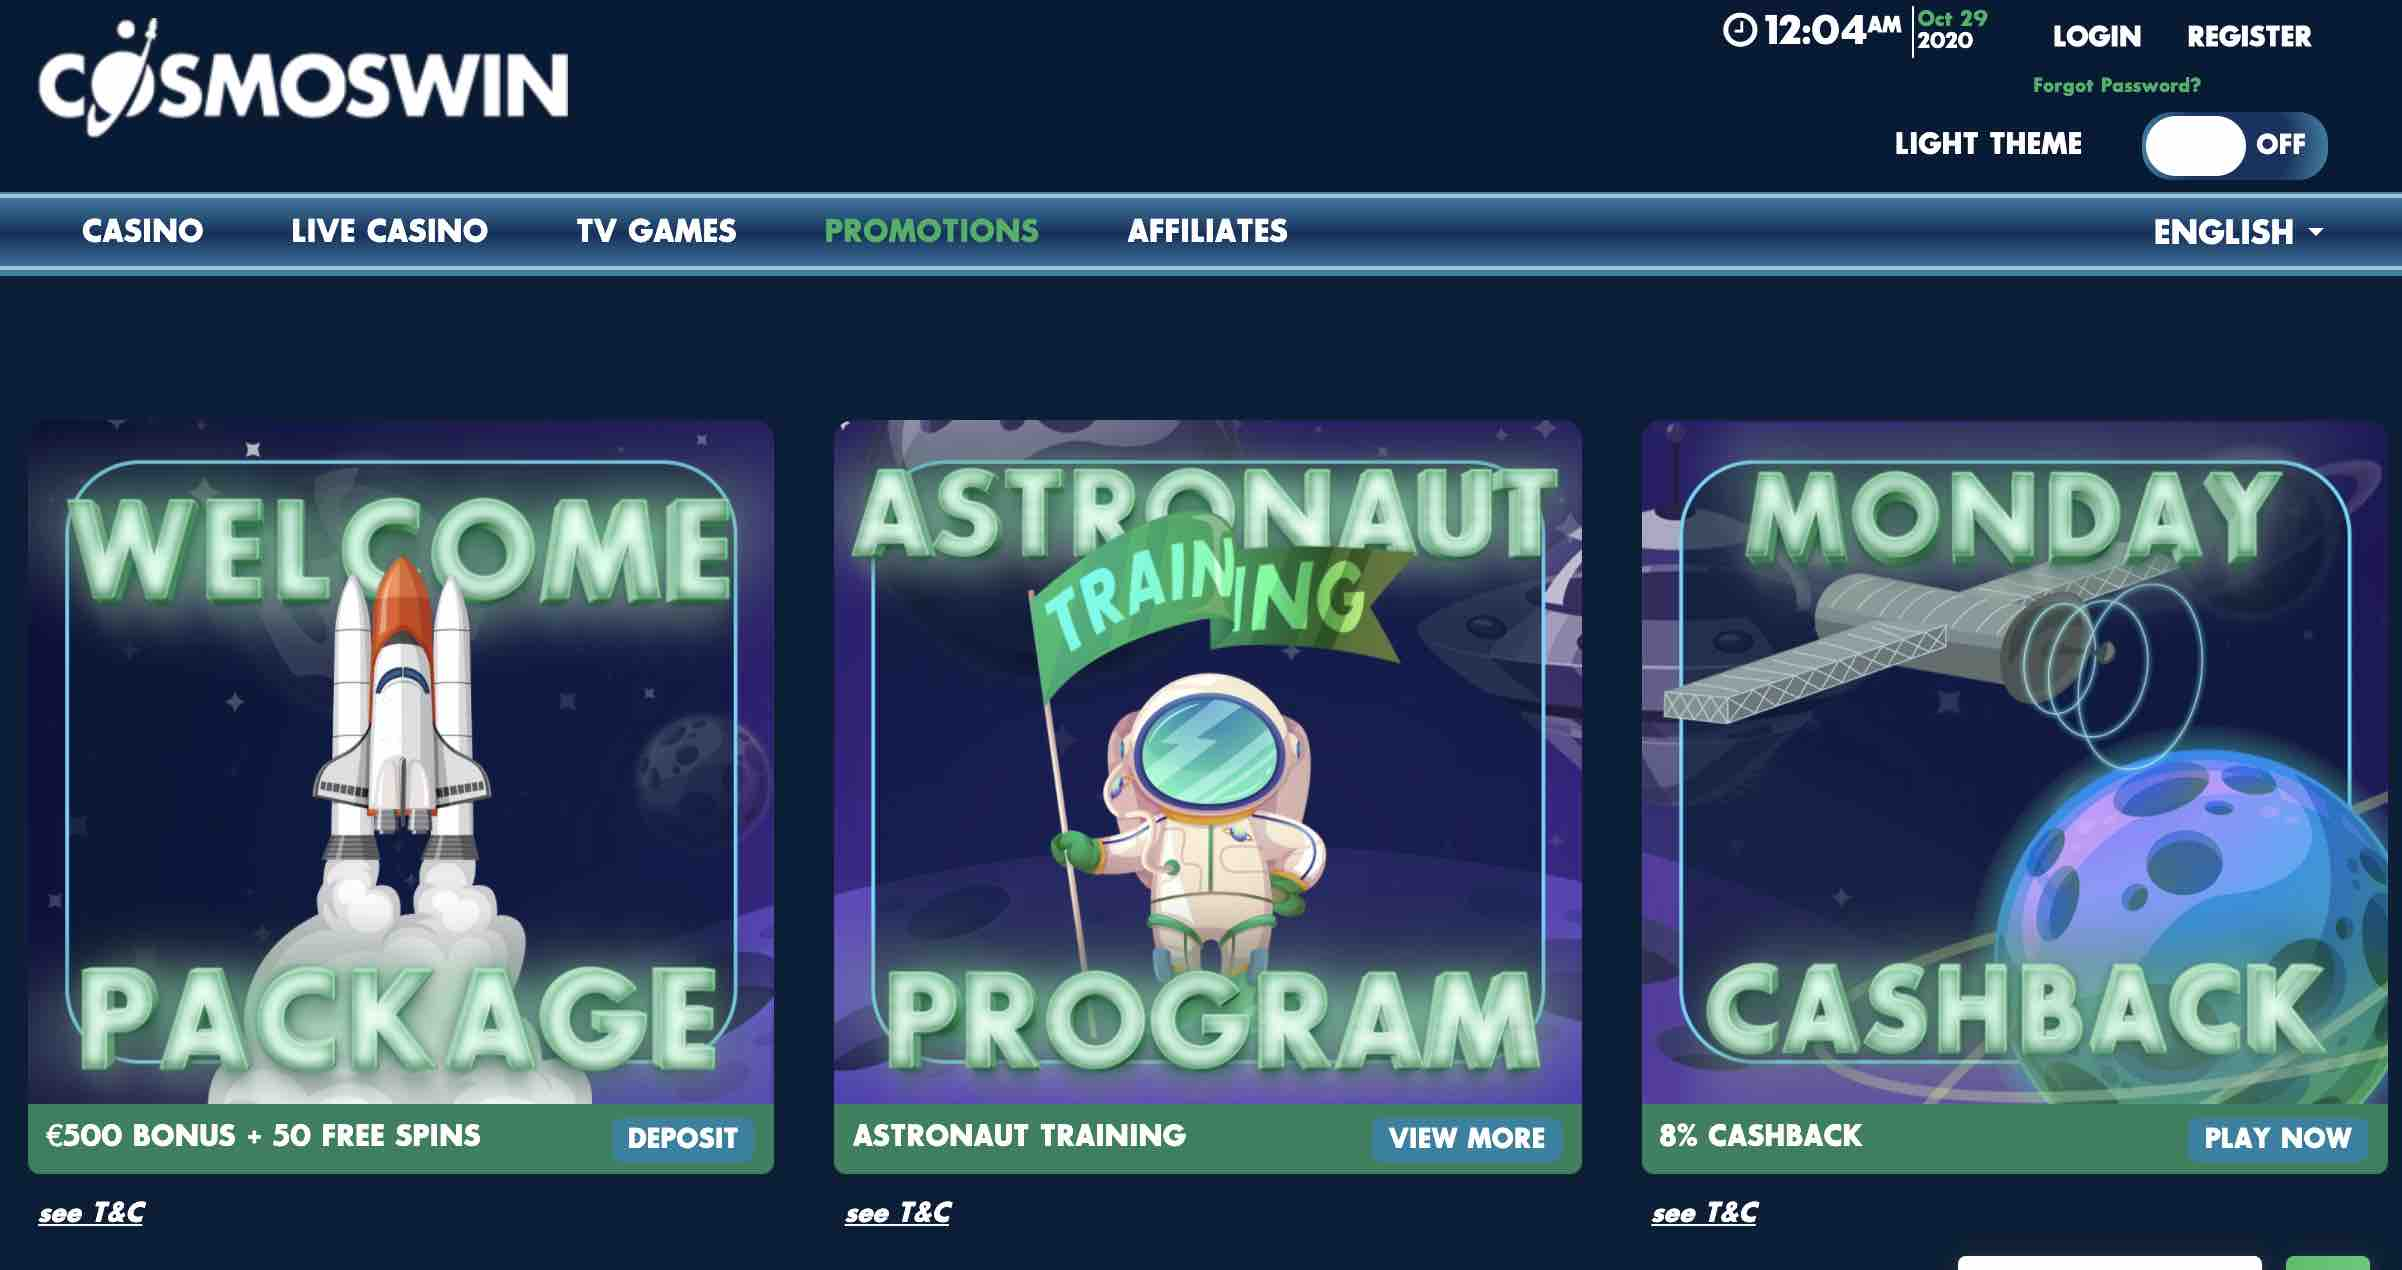 CosmosWins Casino Bonuses and Promotions